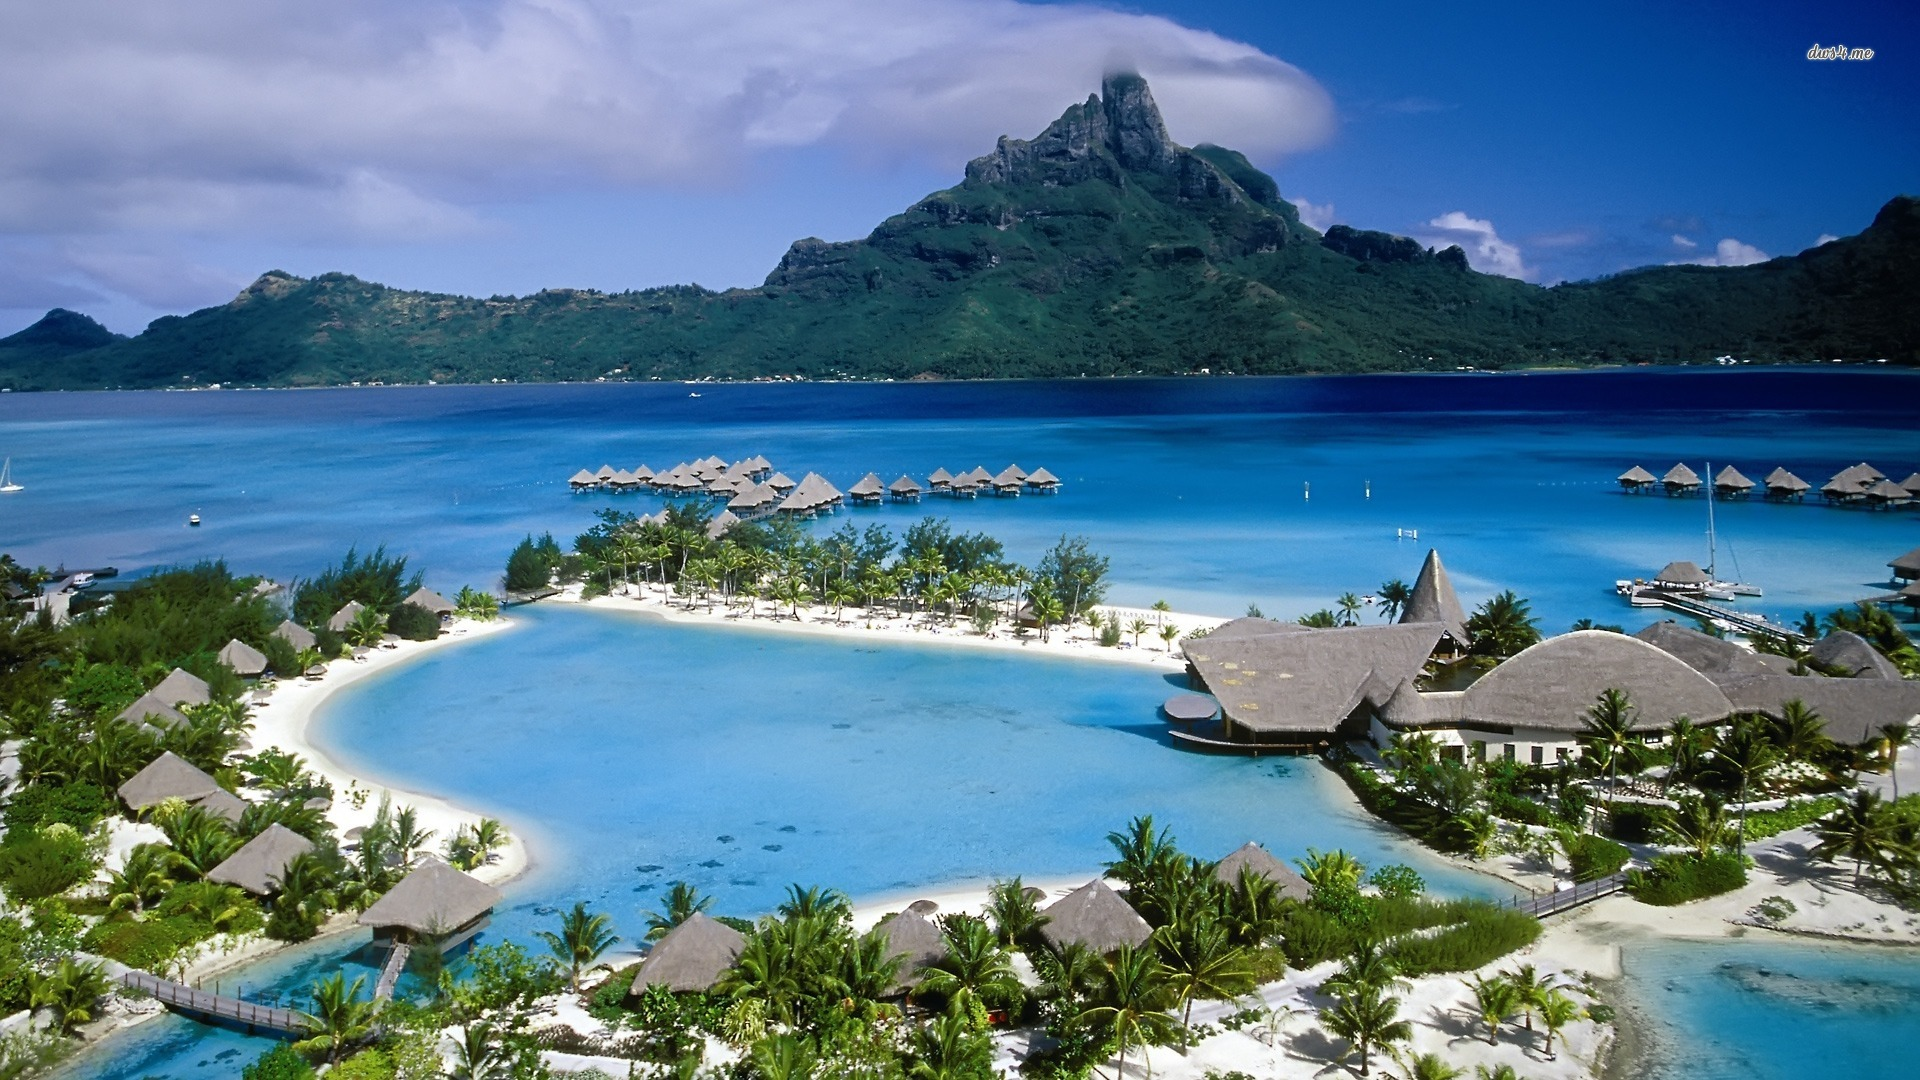 Bora Bora Beach 37 Wallpaper HD